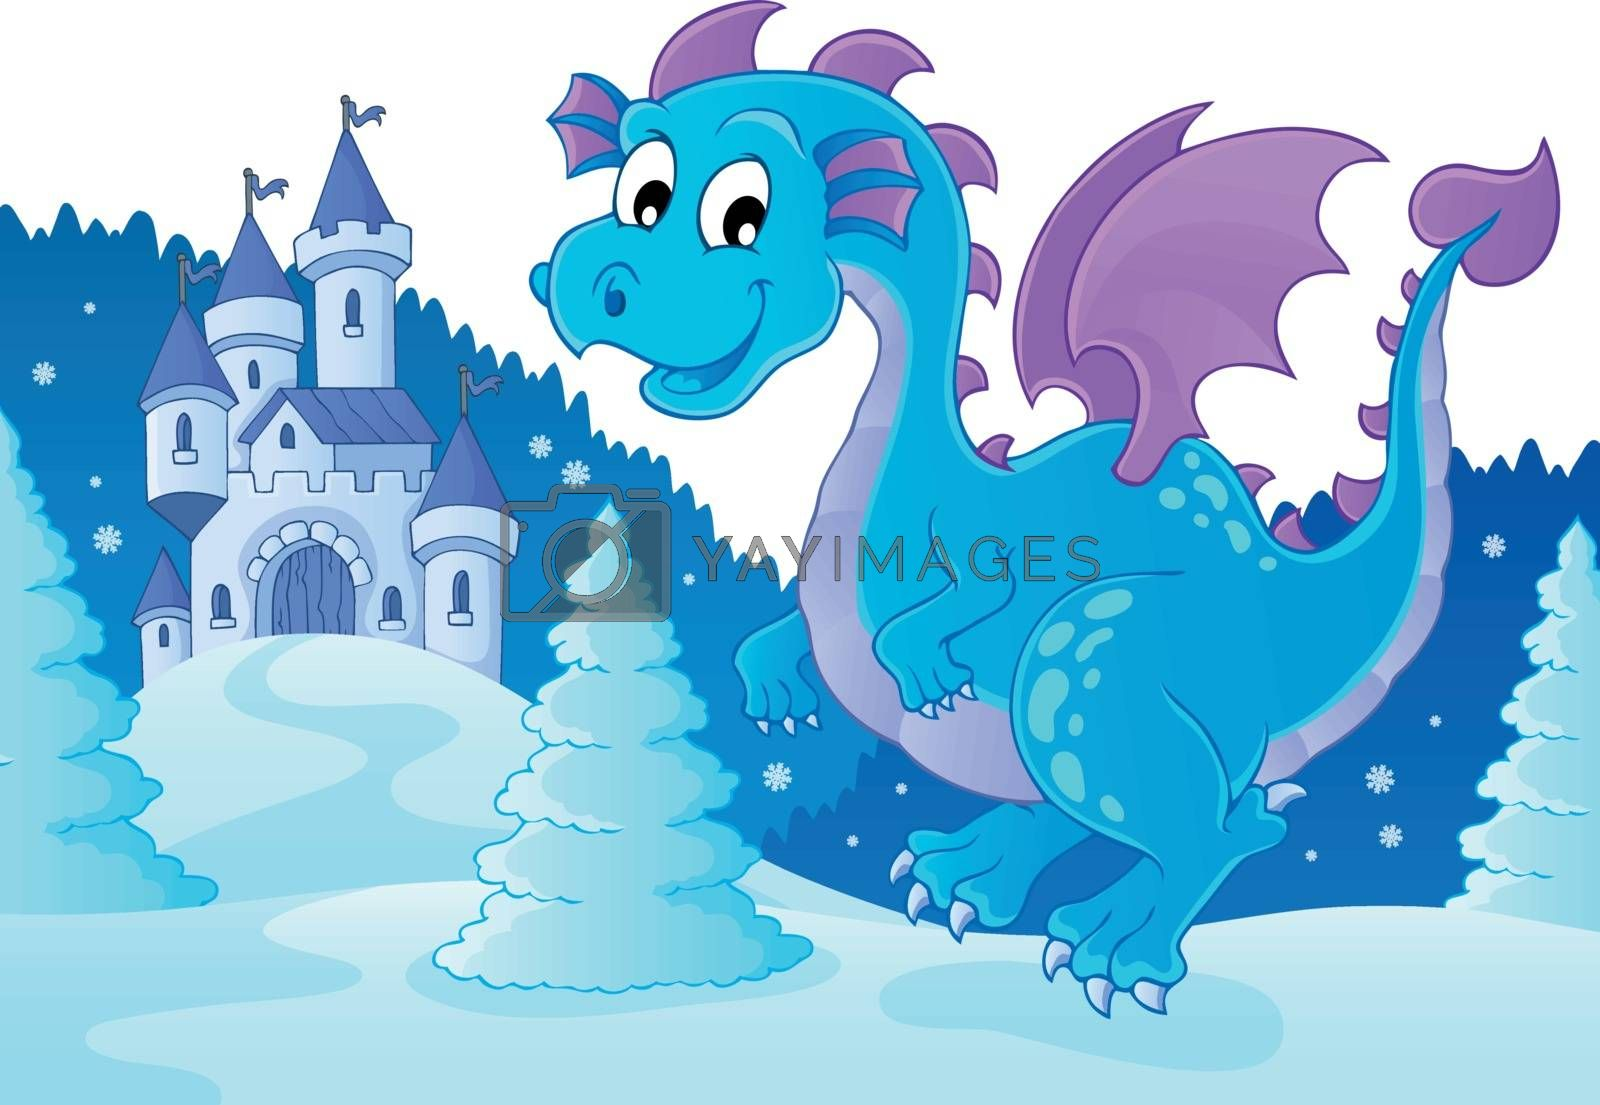 Winter dragon theme image 2 - eps10 vector illustration.